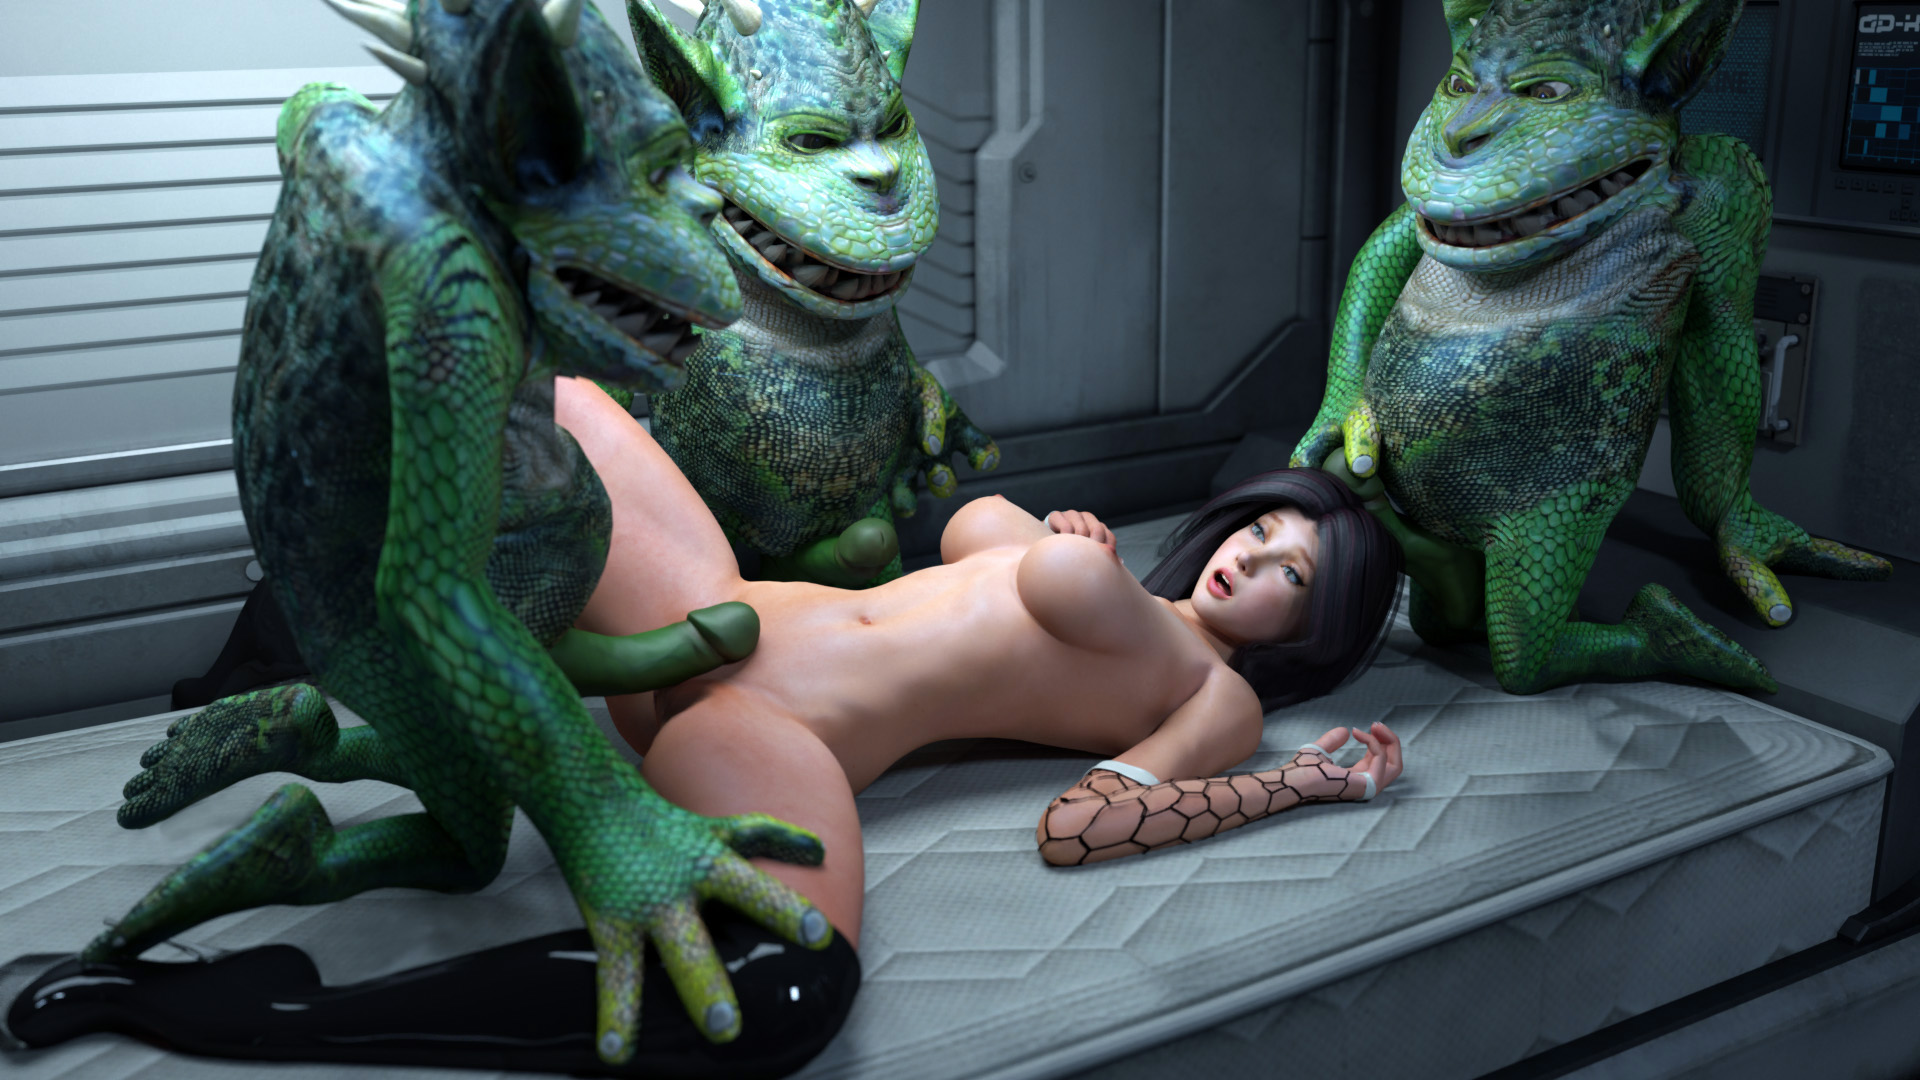 Alien fucking girl photo erotic download